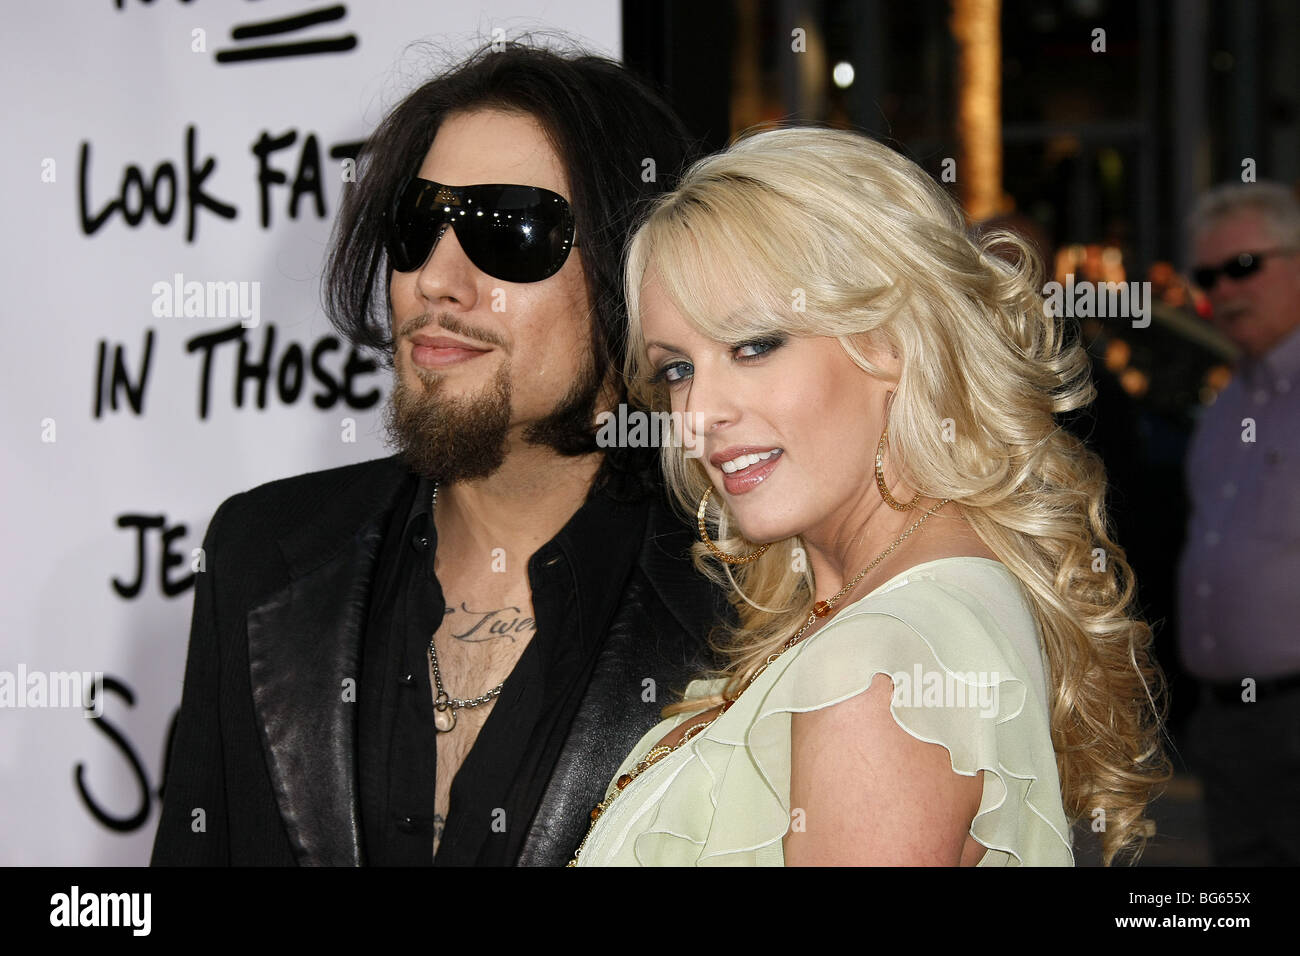 DAVE NAVARRO STORMY DANIELS FORGETTING SARAH MARSHALL WORLD PREMIERE GRAUMANS CHINESE HOLLYWOOD LOS ANGELES USA - Stock Image